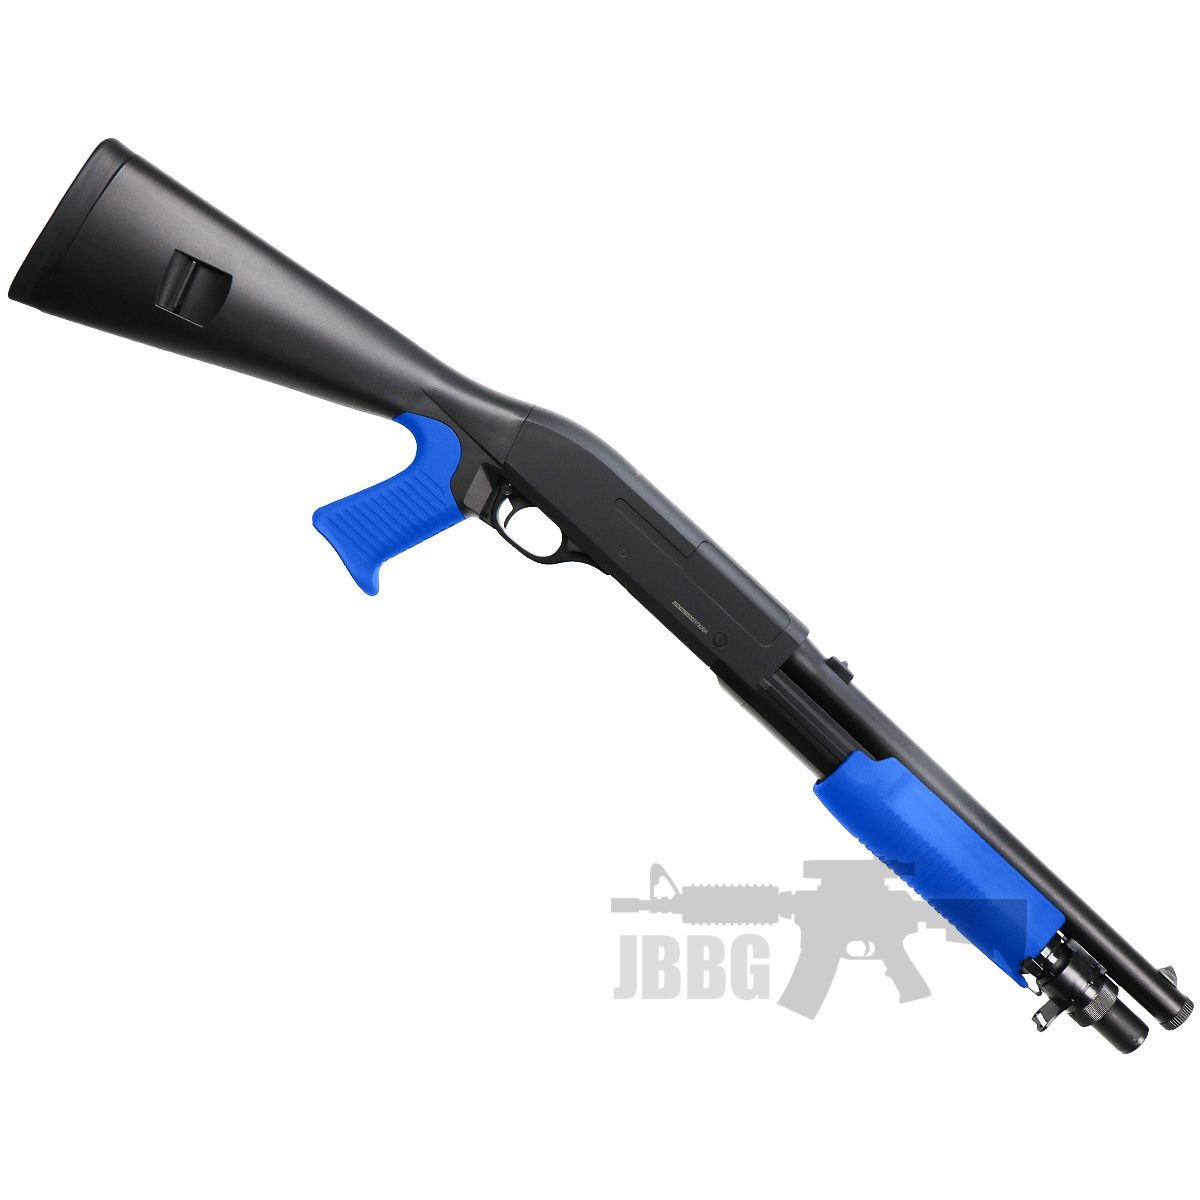 m56a shotgun airsoft jbbg 1 blue